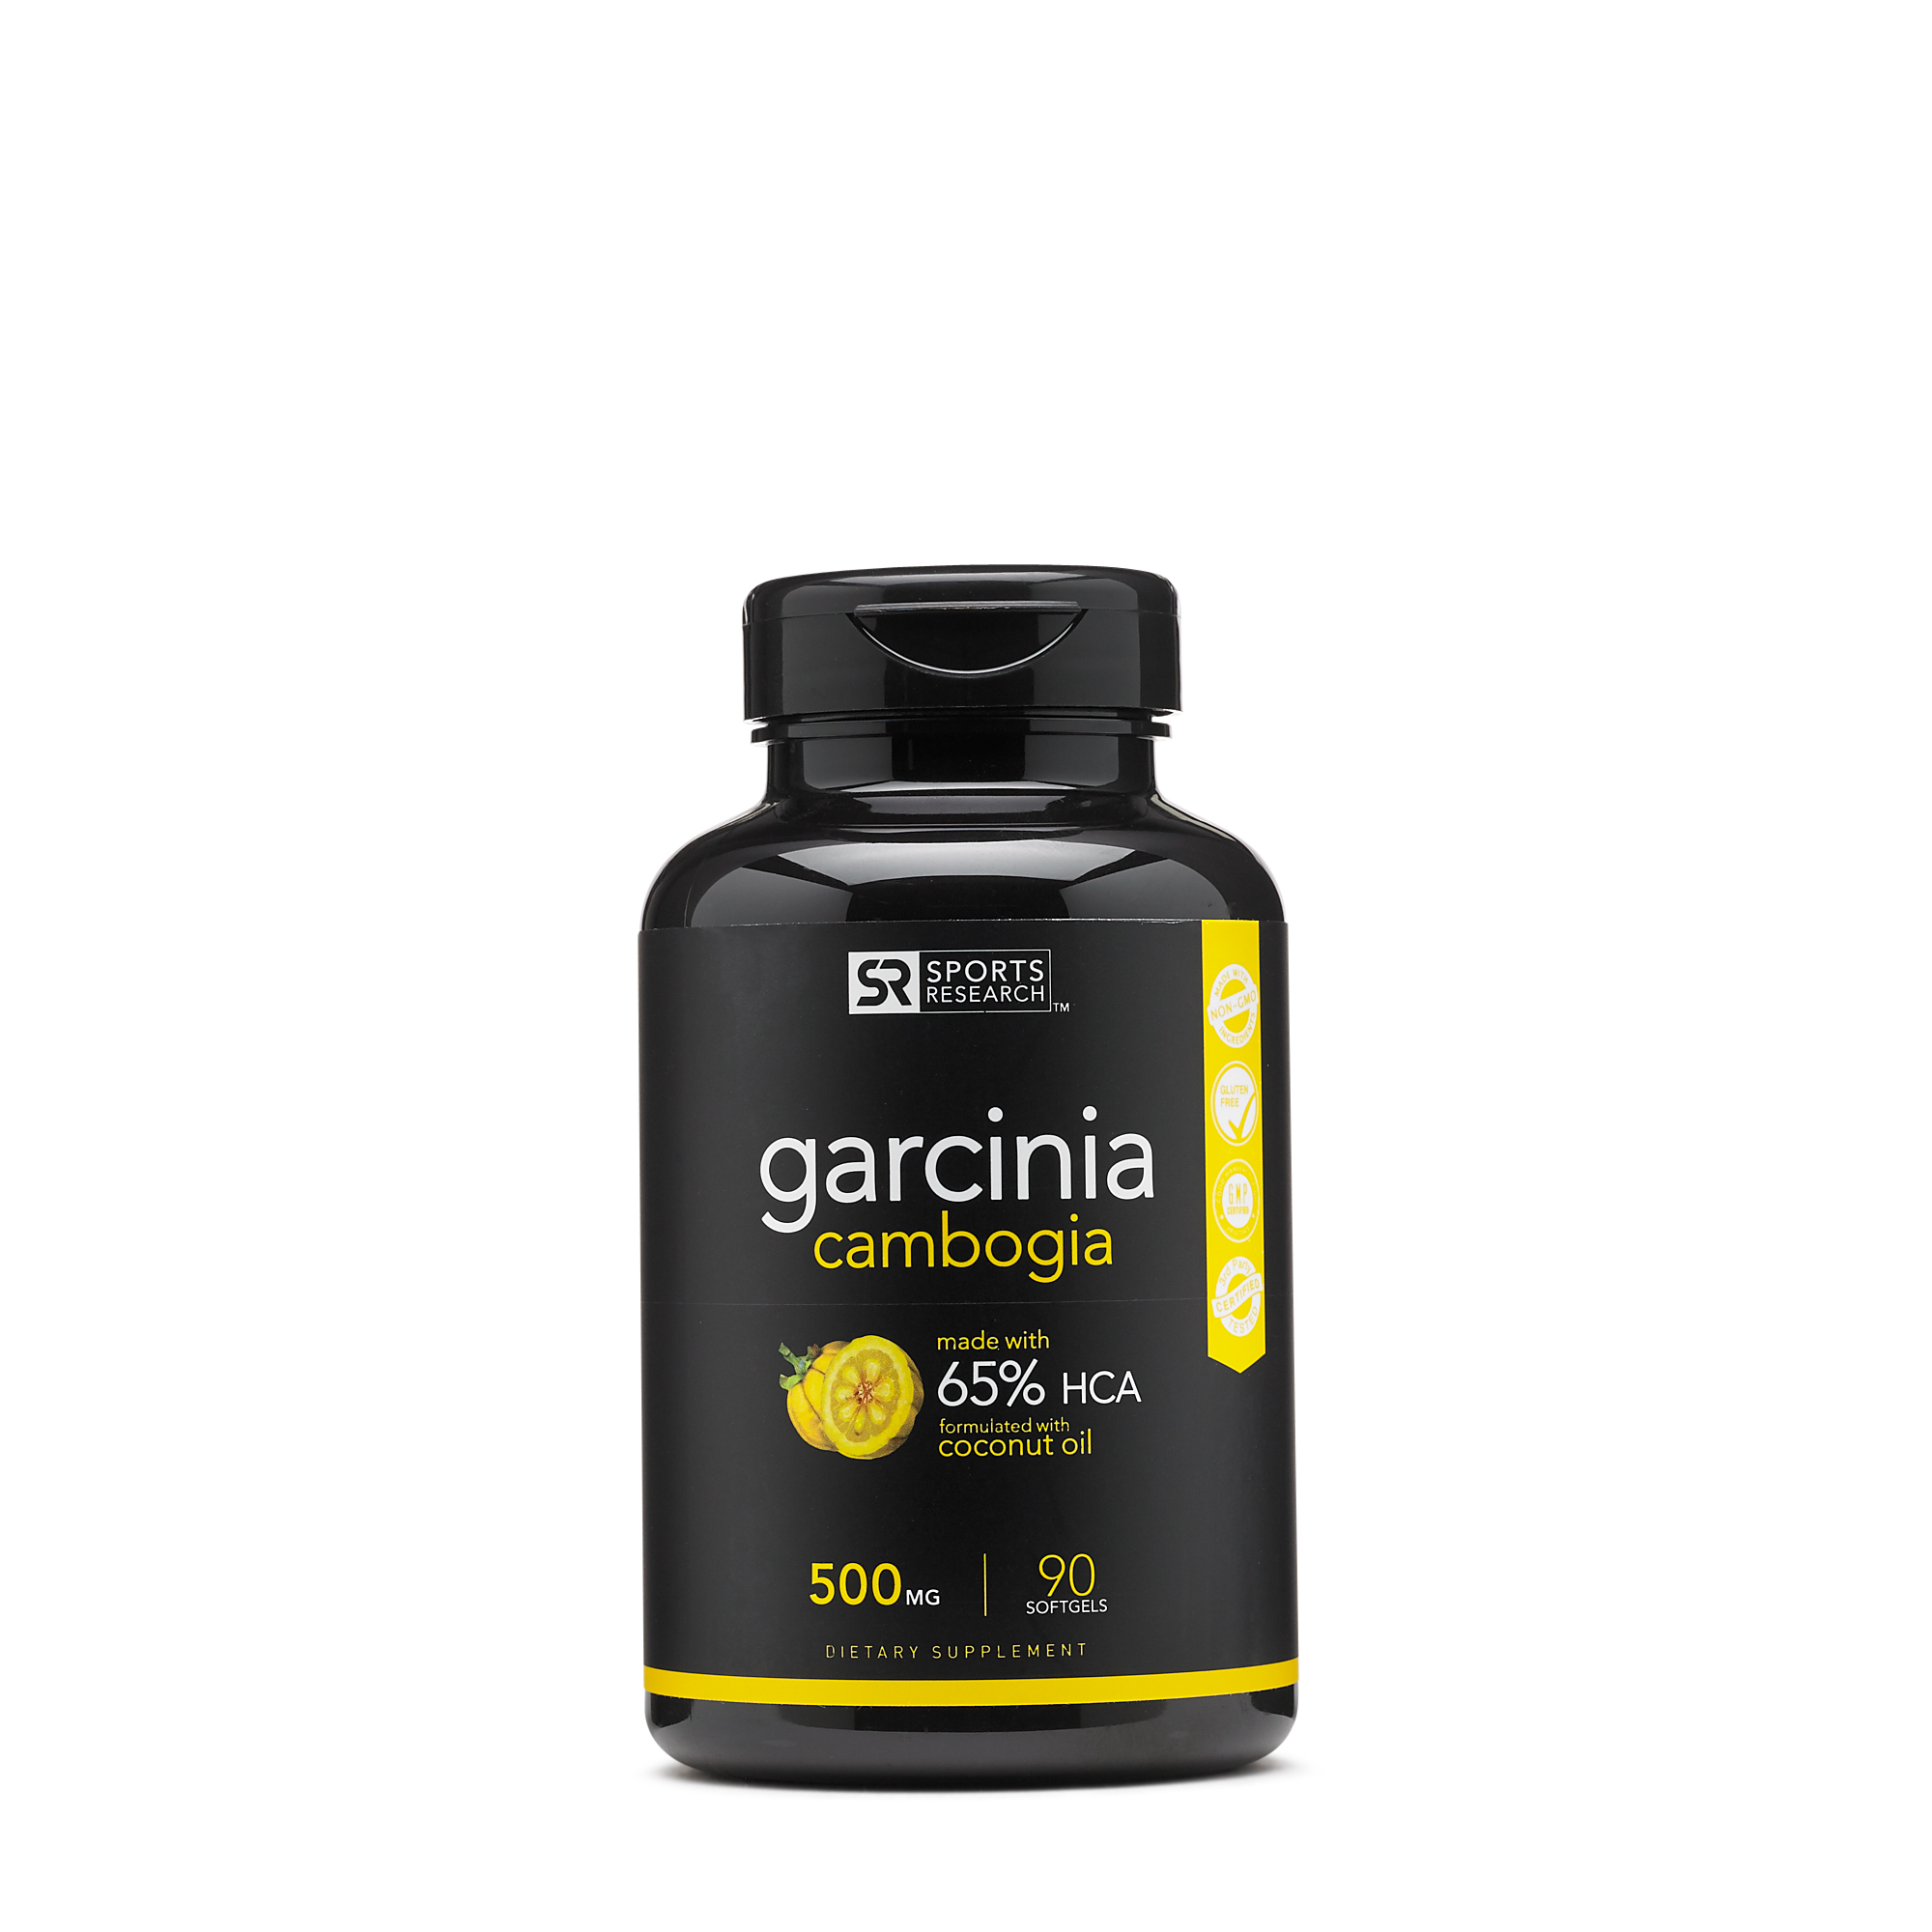 Sports Research Garcinia Cambogia Gnc